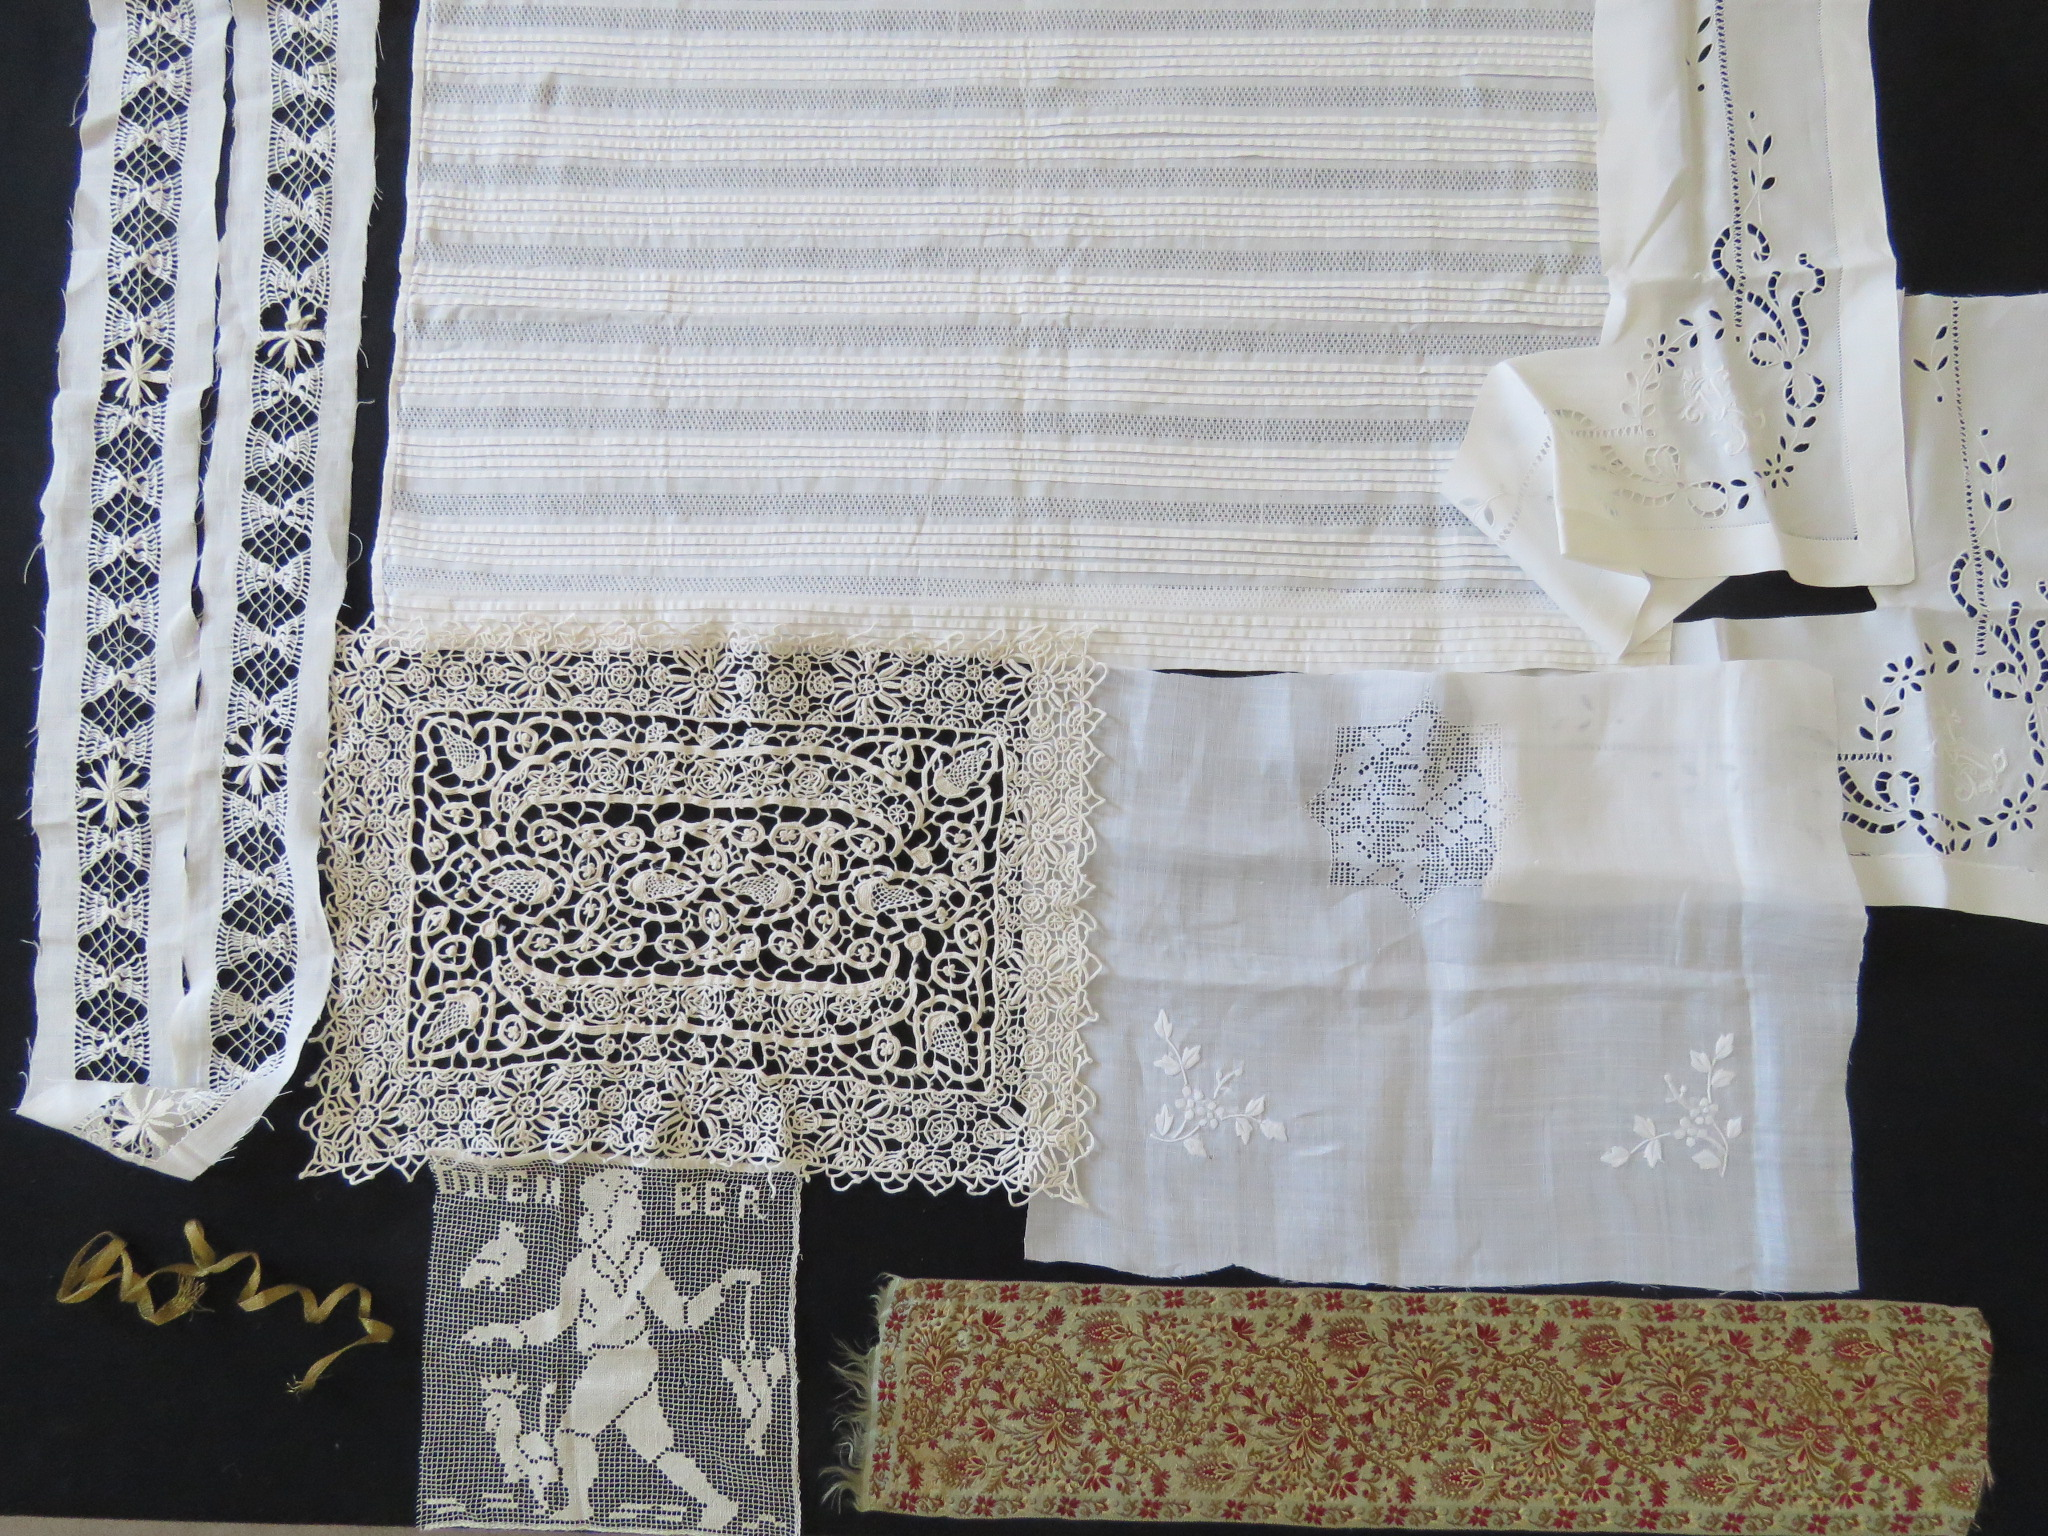 Vintage Embroidered Bed Jacket White Cotton Antique Trousseau  (LAC-277) in Lace > Nightgowns, Shifts, Lingerie